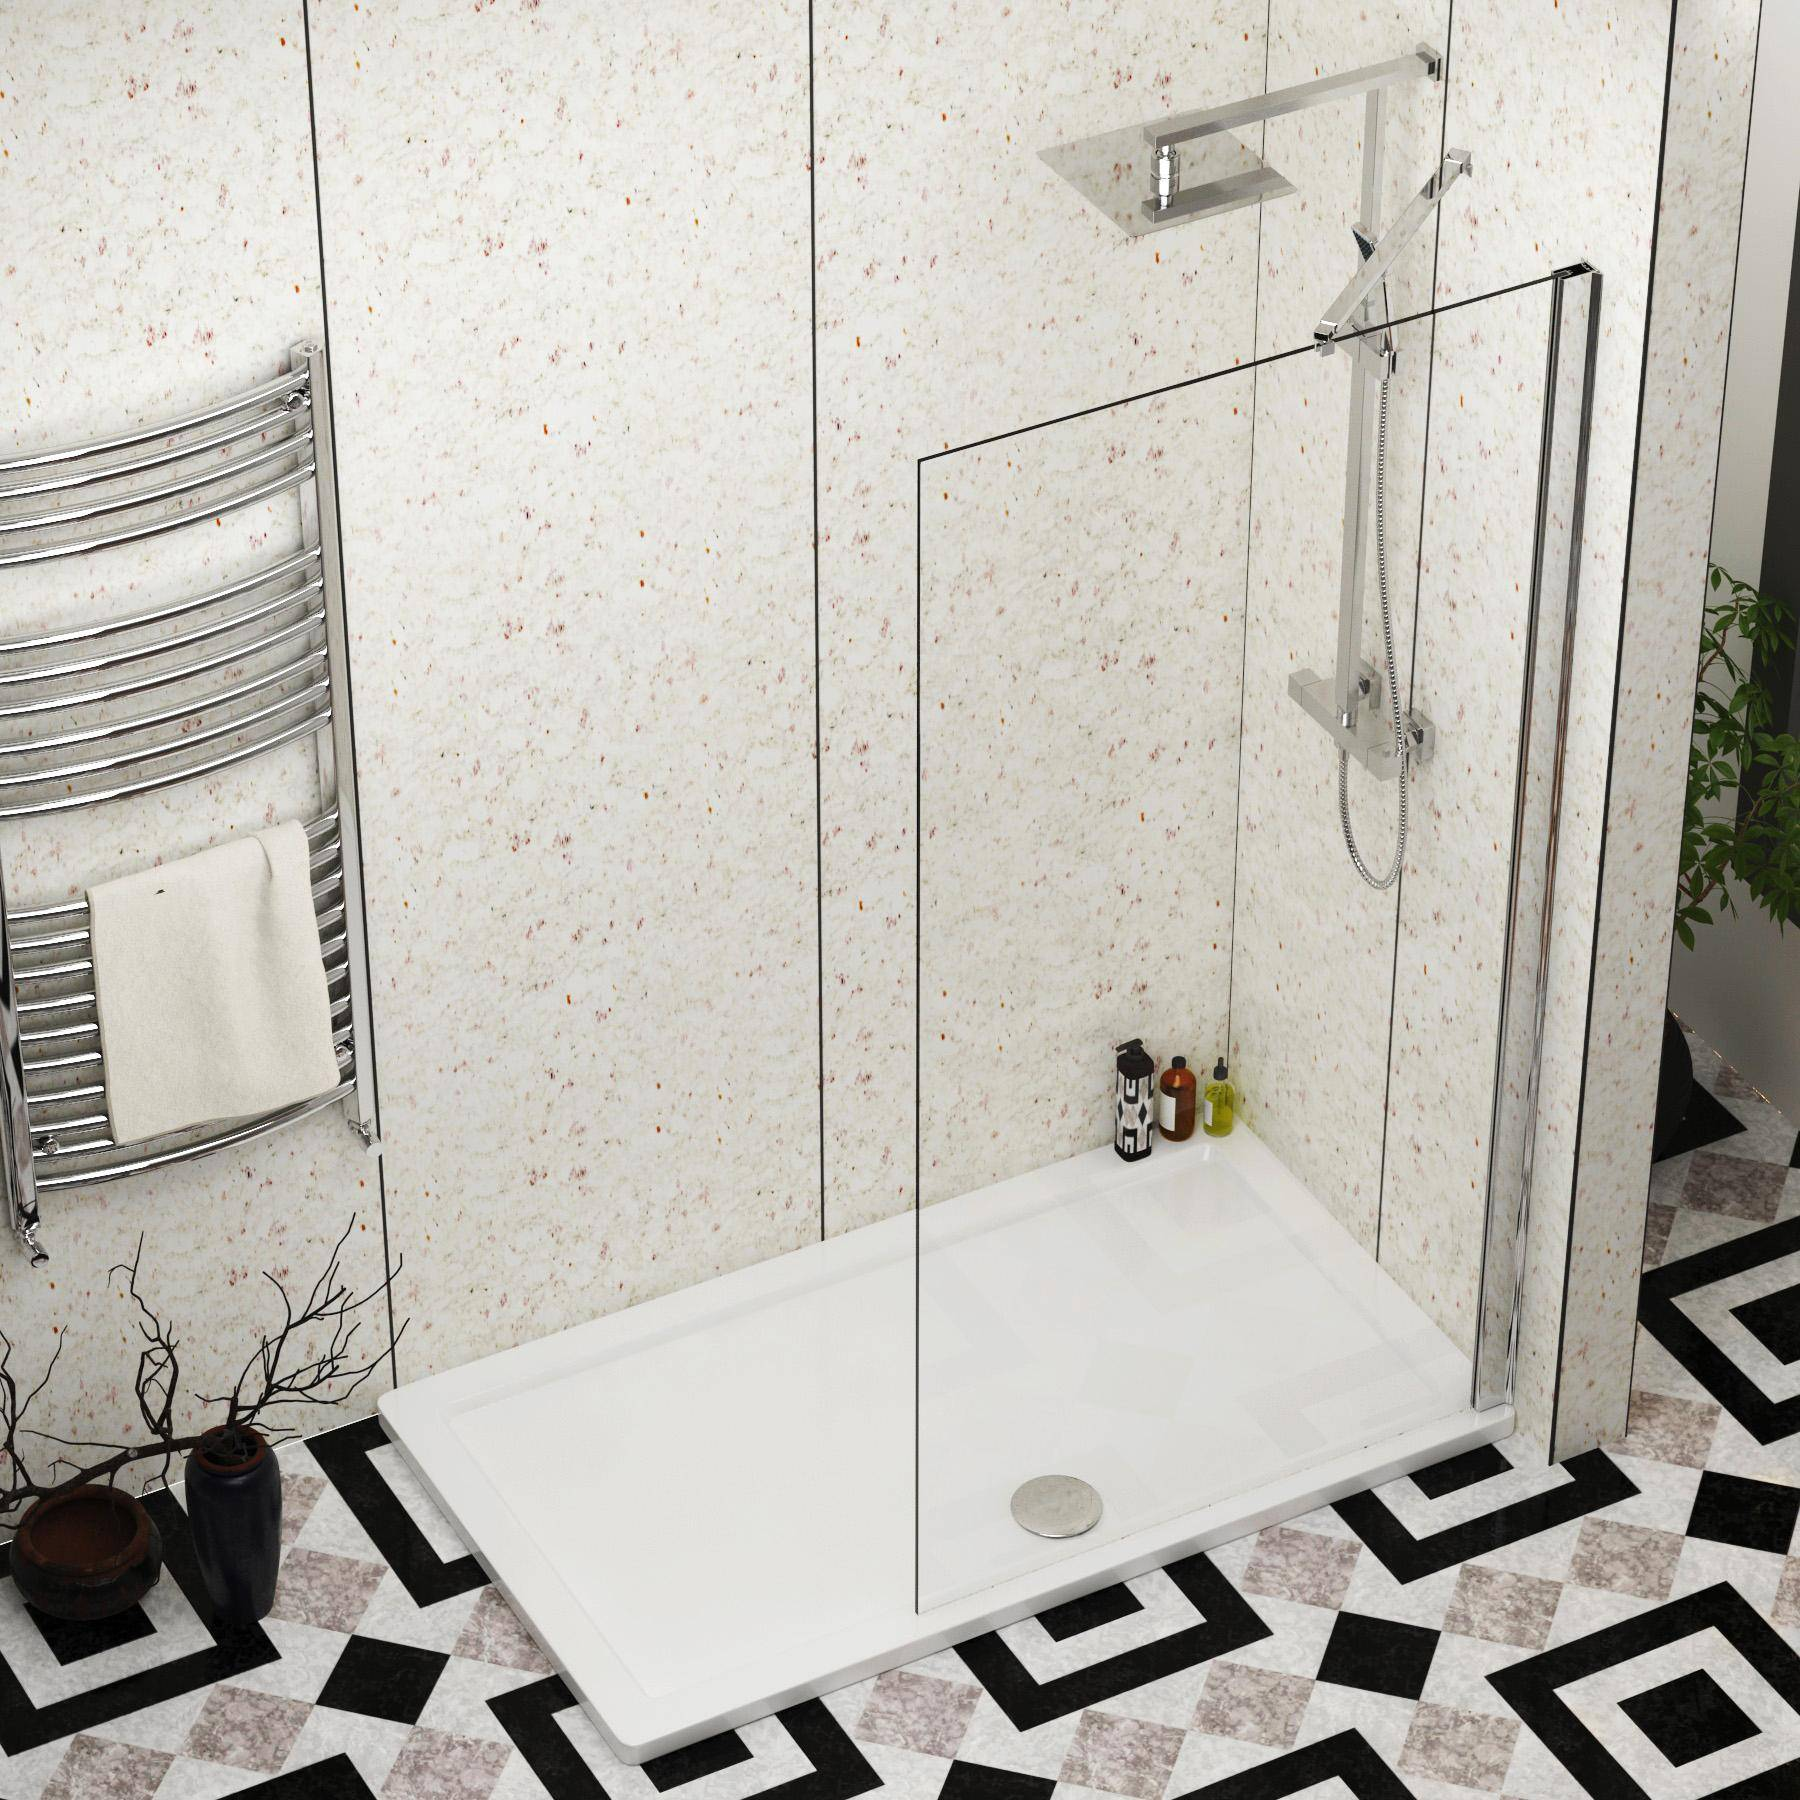 Royal Bathrooms Marbella 900mm Walk In Wet Room Shower Screen with Pearlston Tray 1700x800mm - Easy Clean